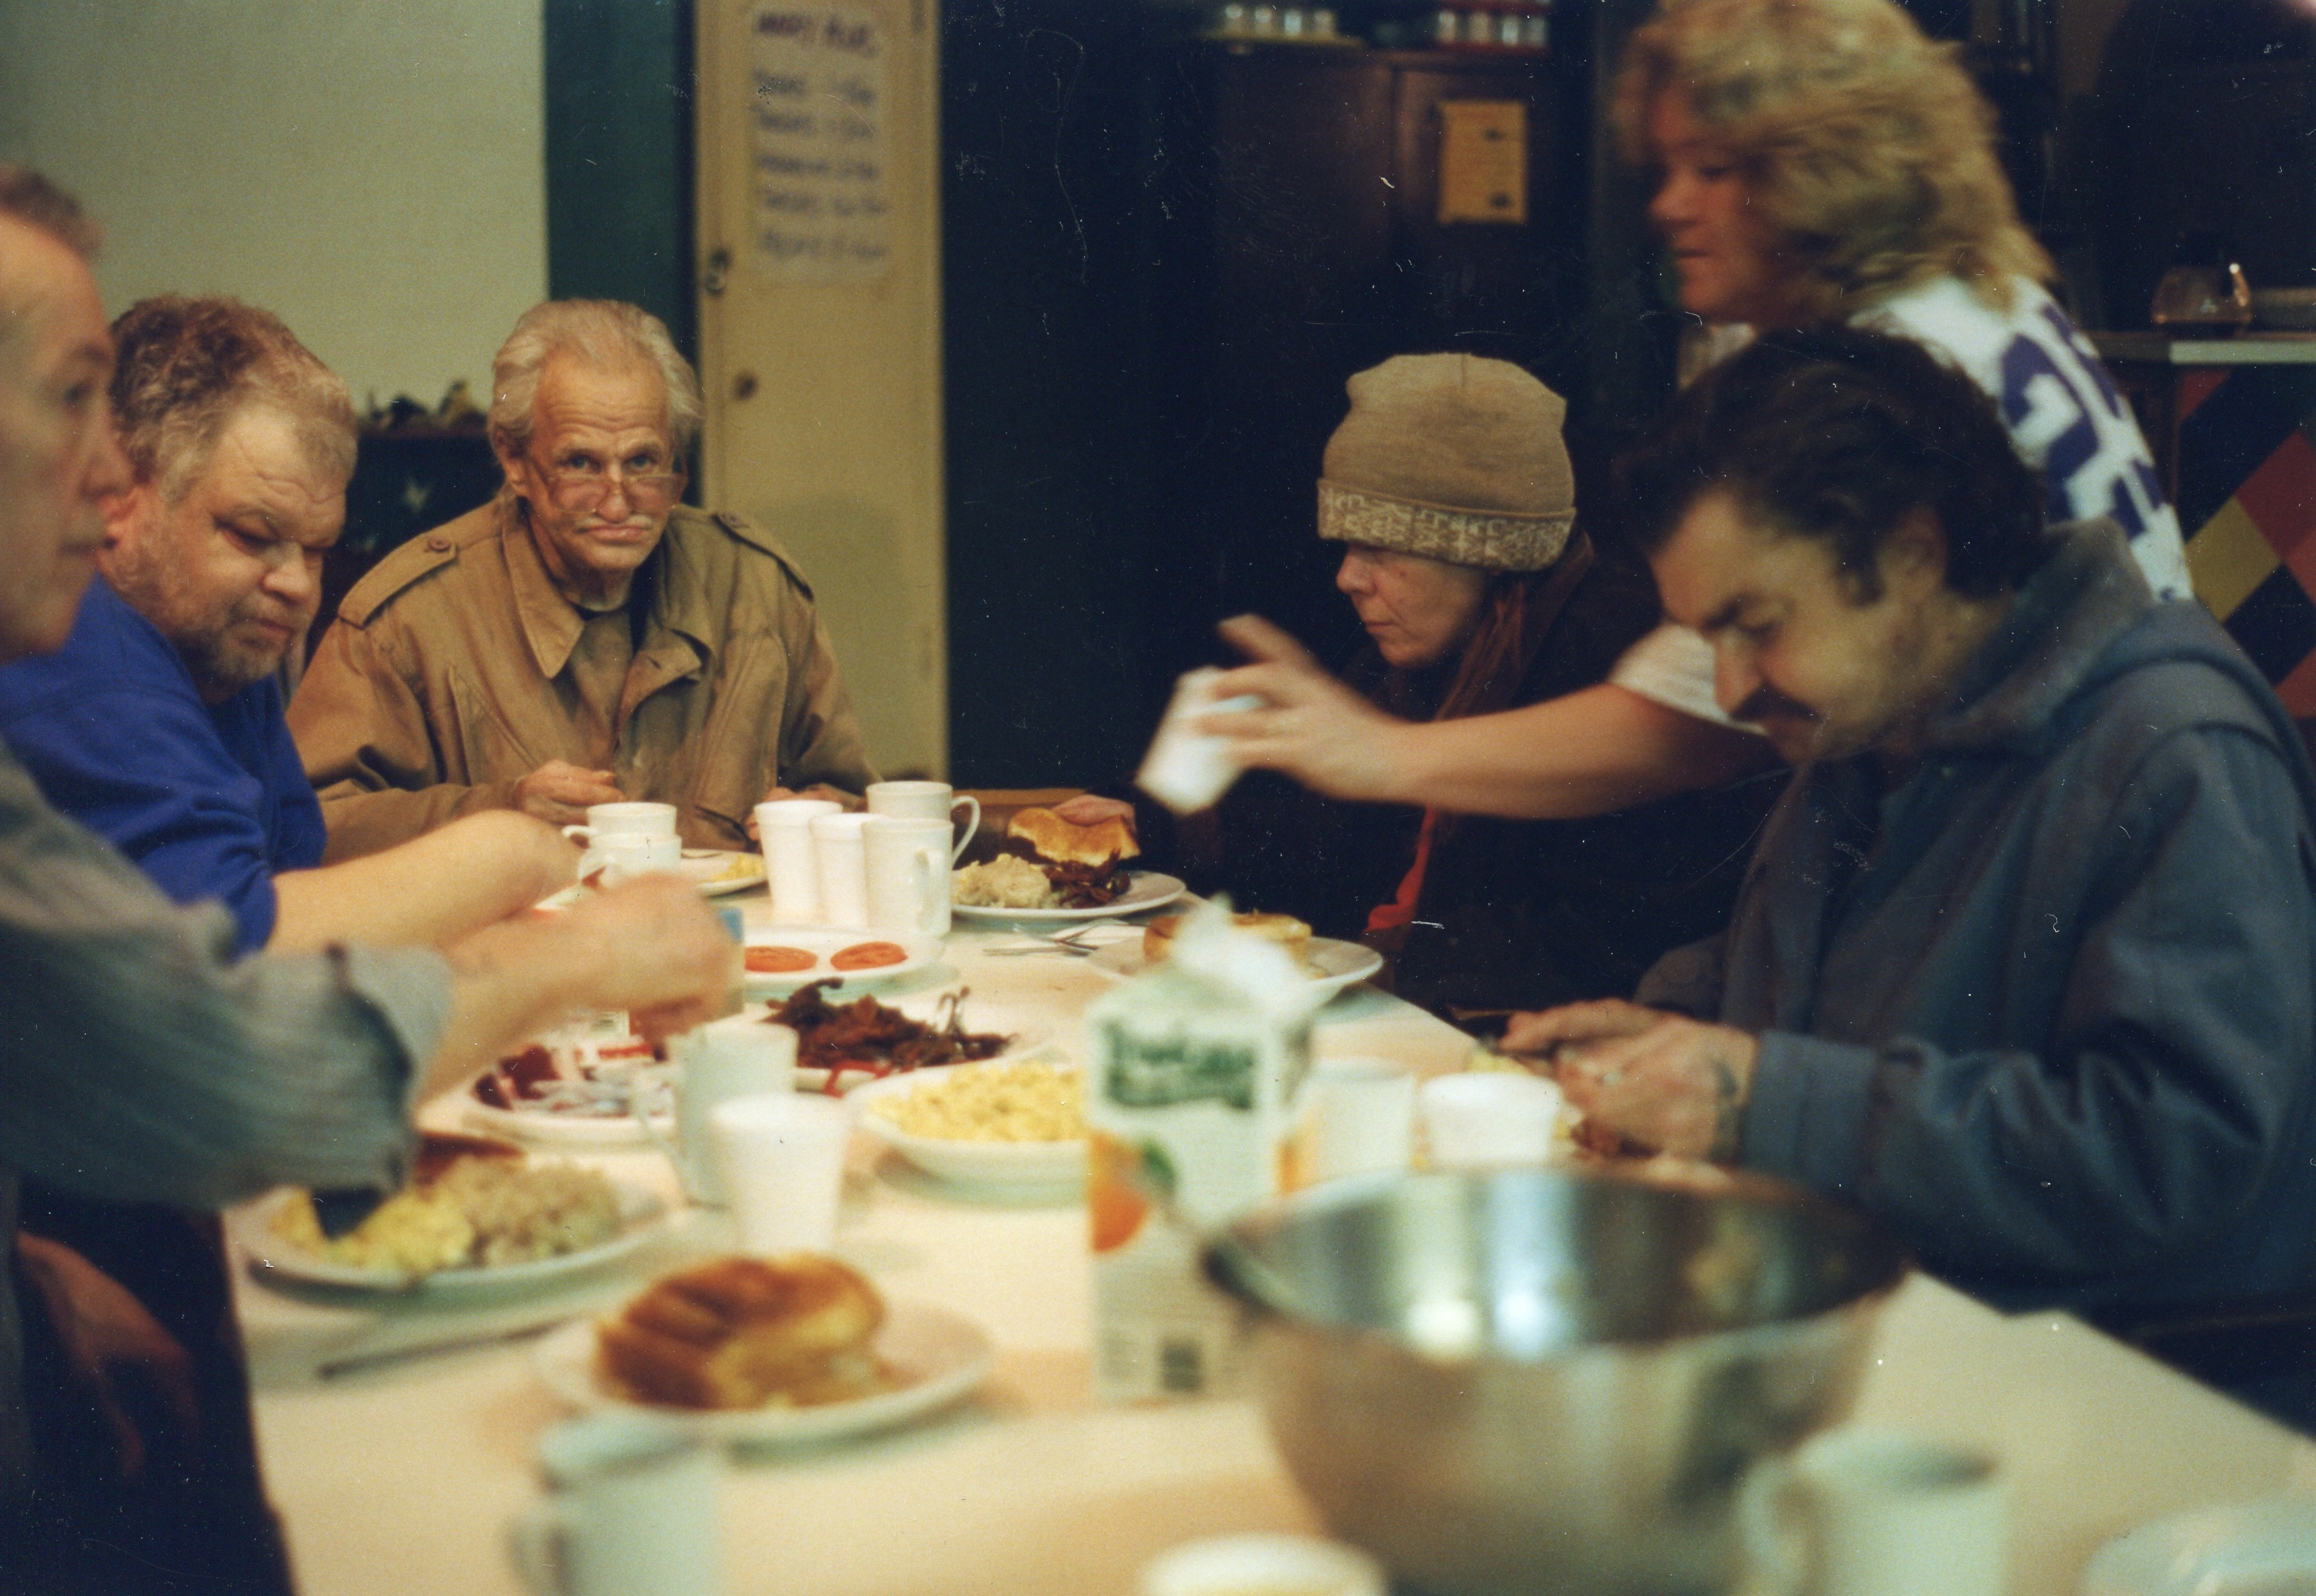 Mealtime photo of group of PARC members sitting around a table eating